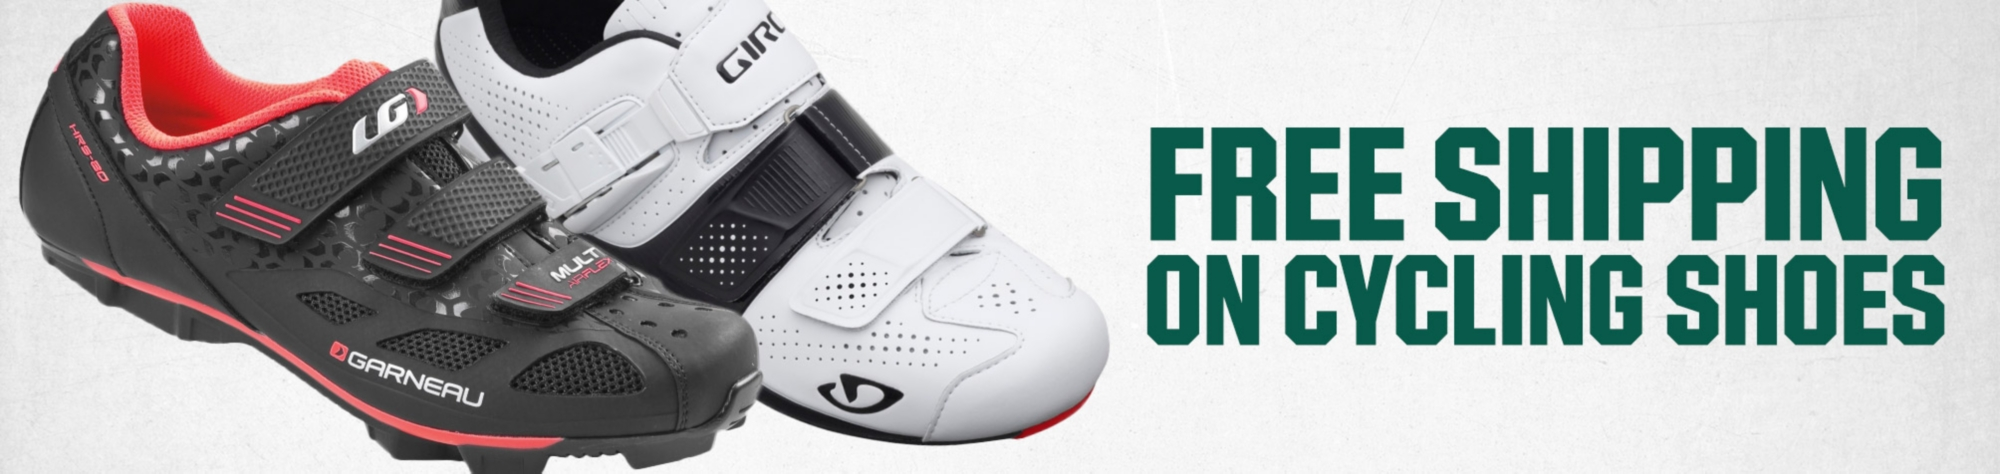 Free Shipping on Cycling Shoes